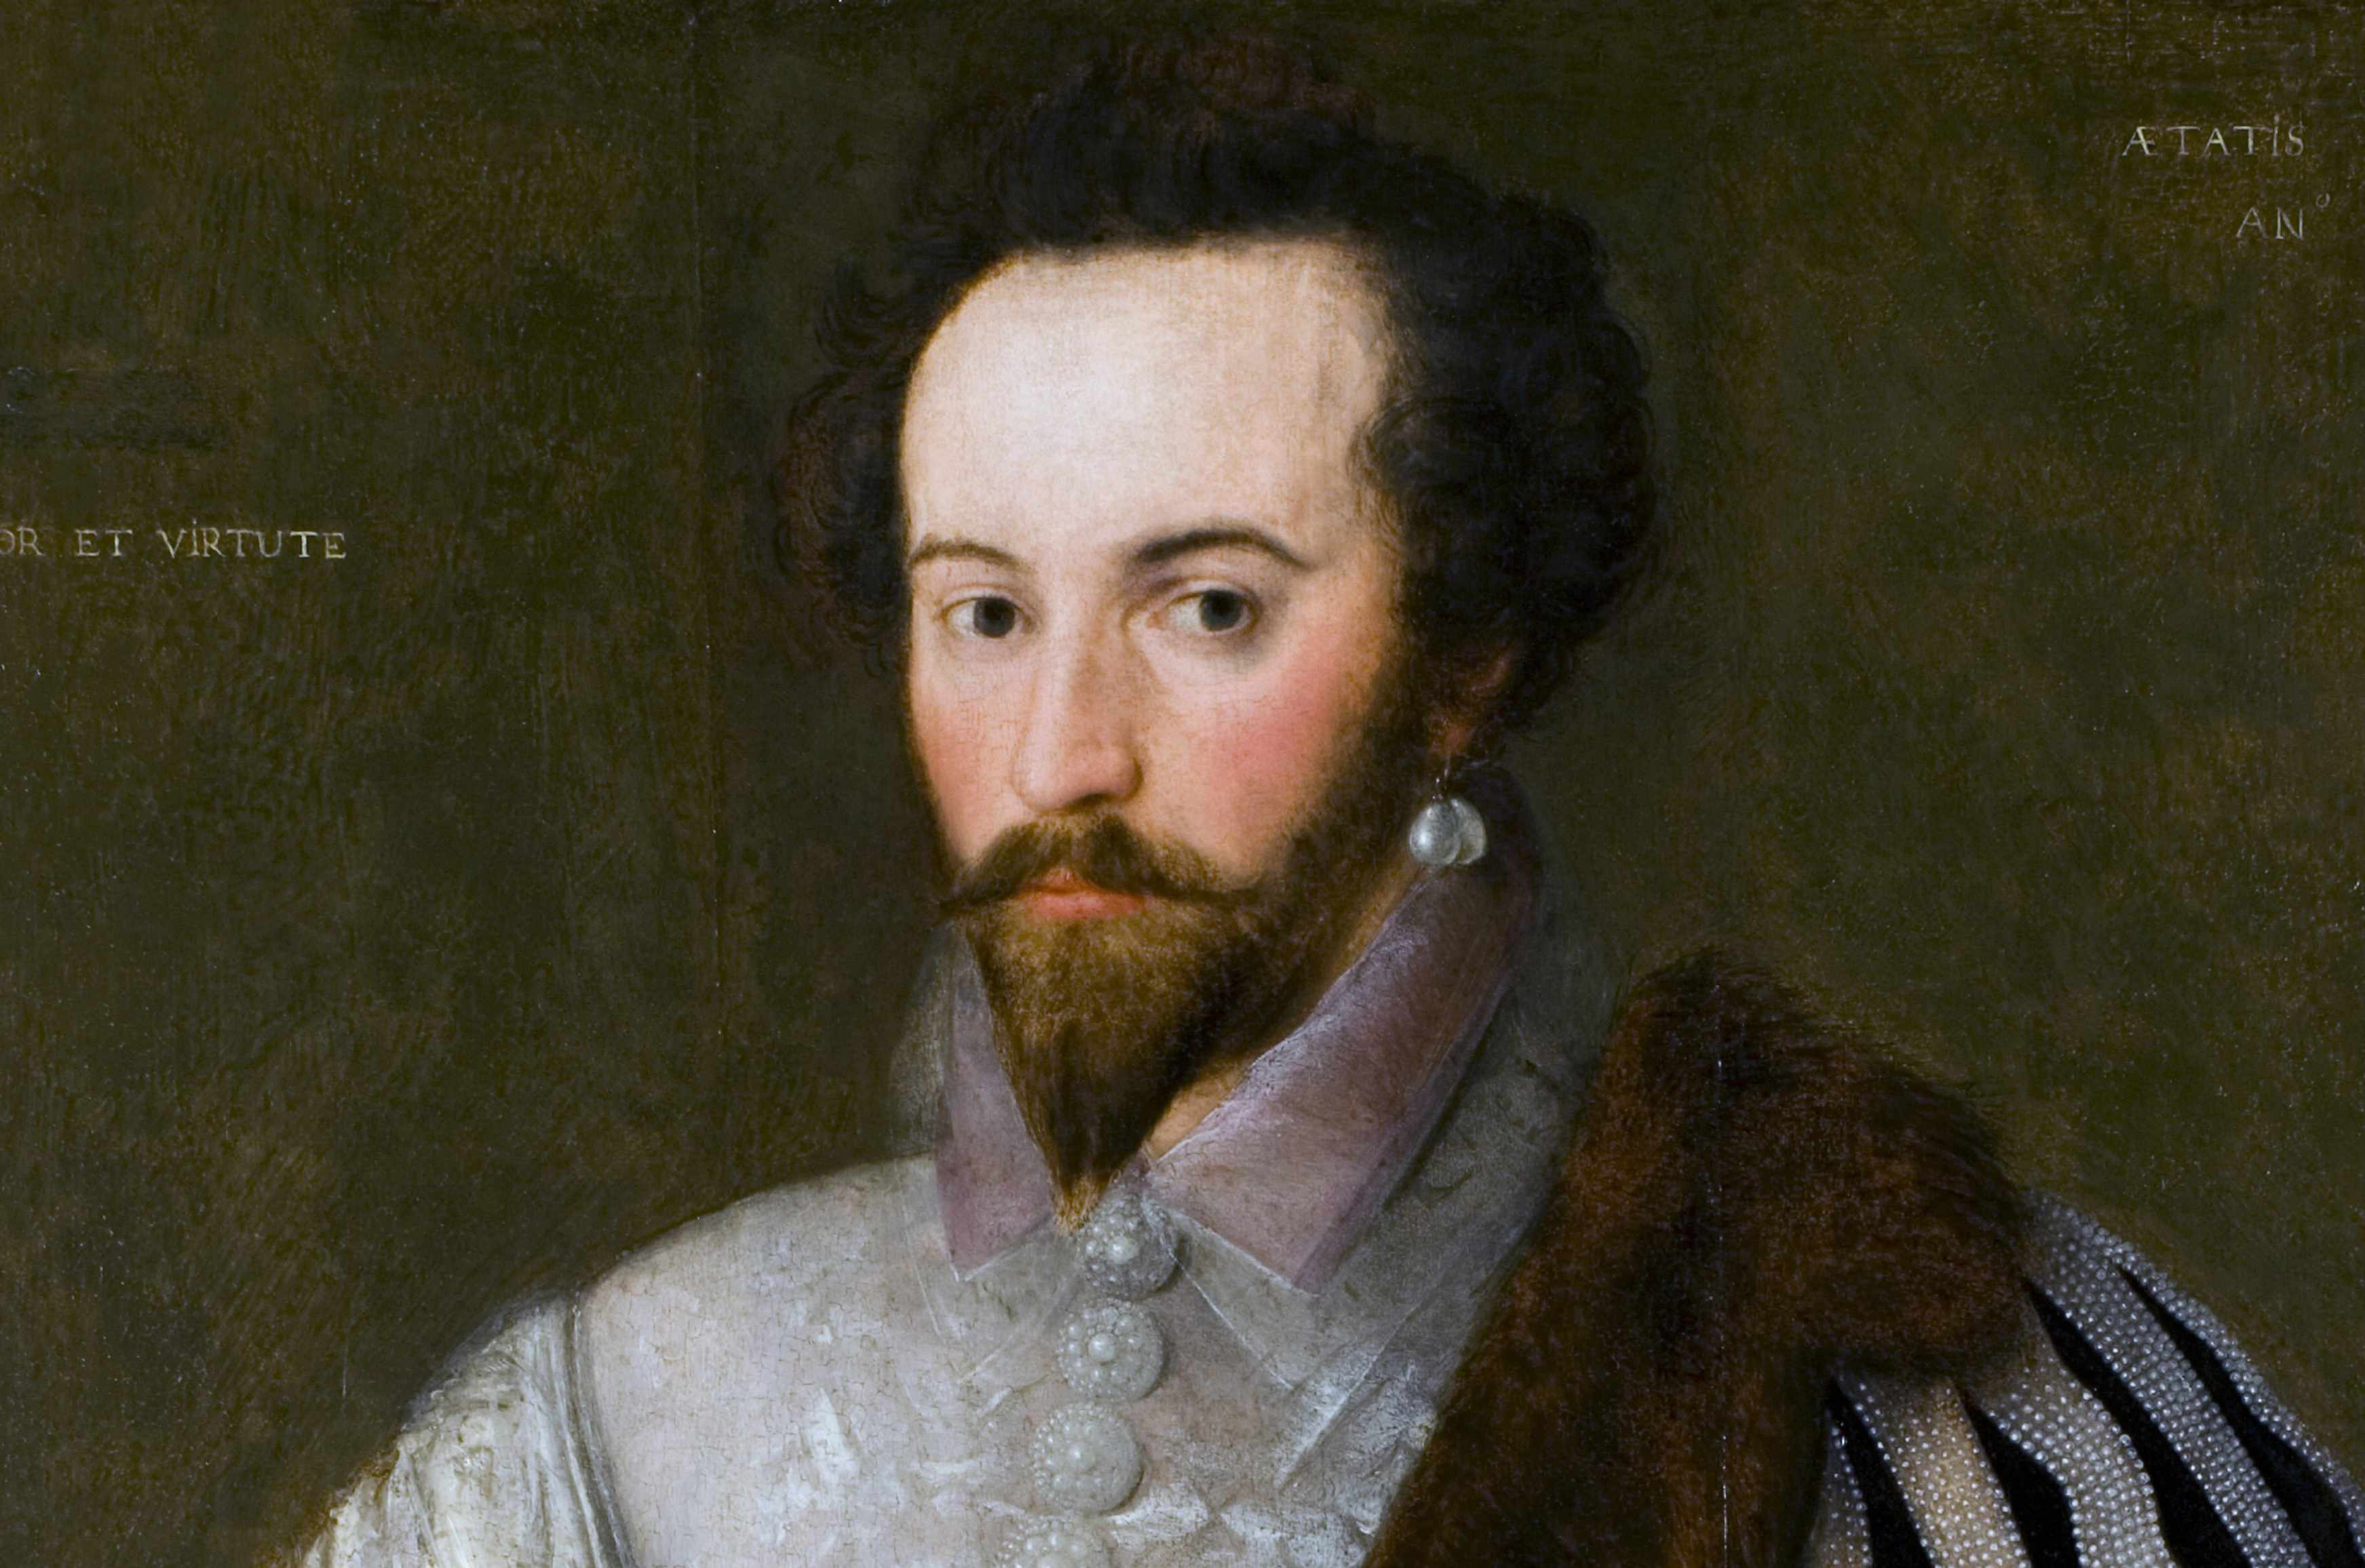 16th Century portrait of Sir Walter Raleigh. © Getty